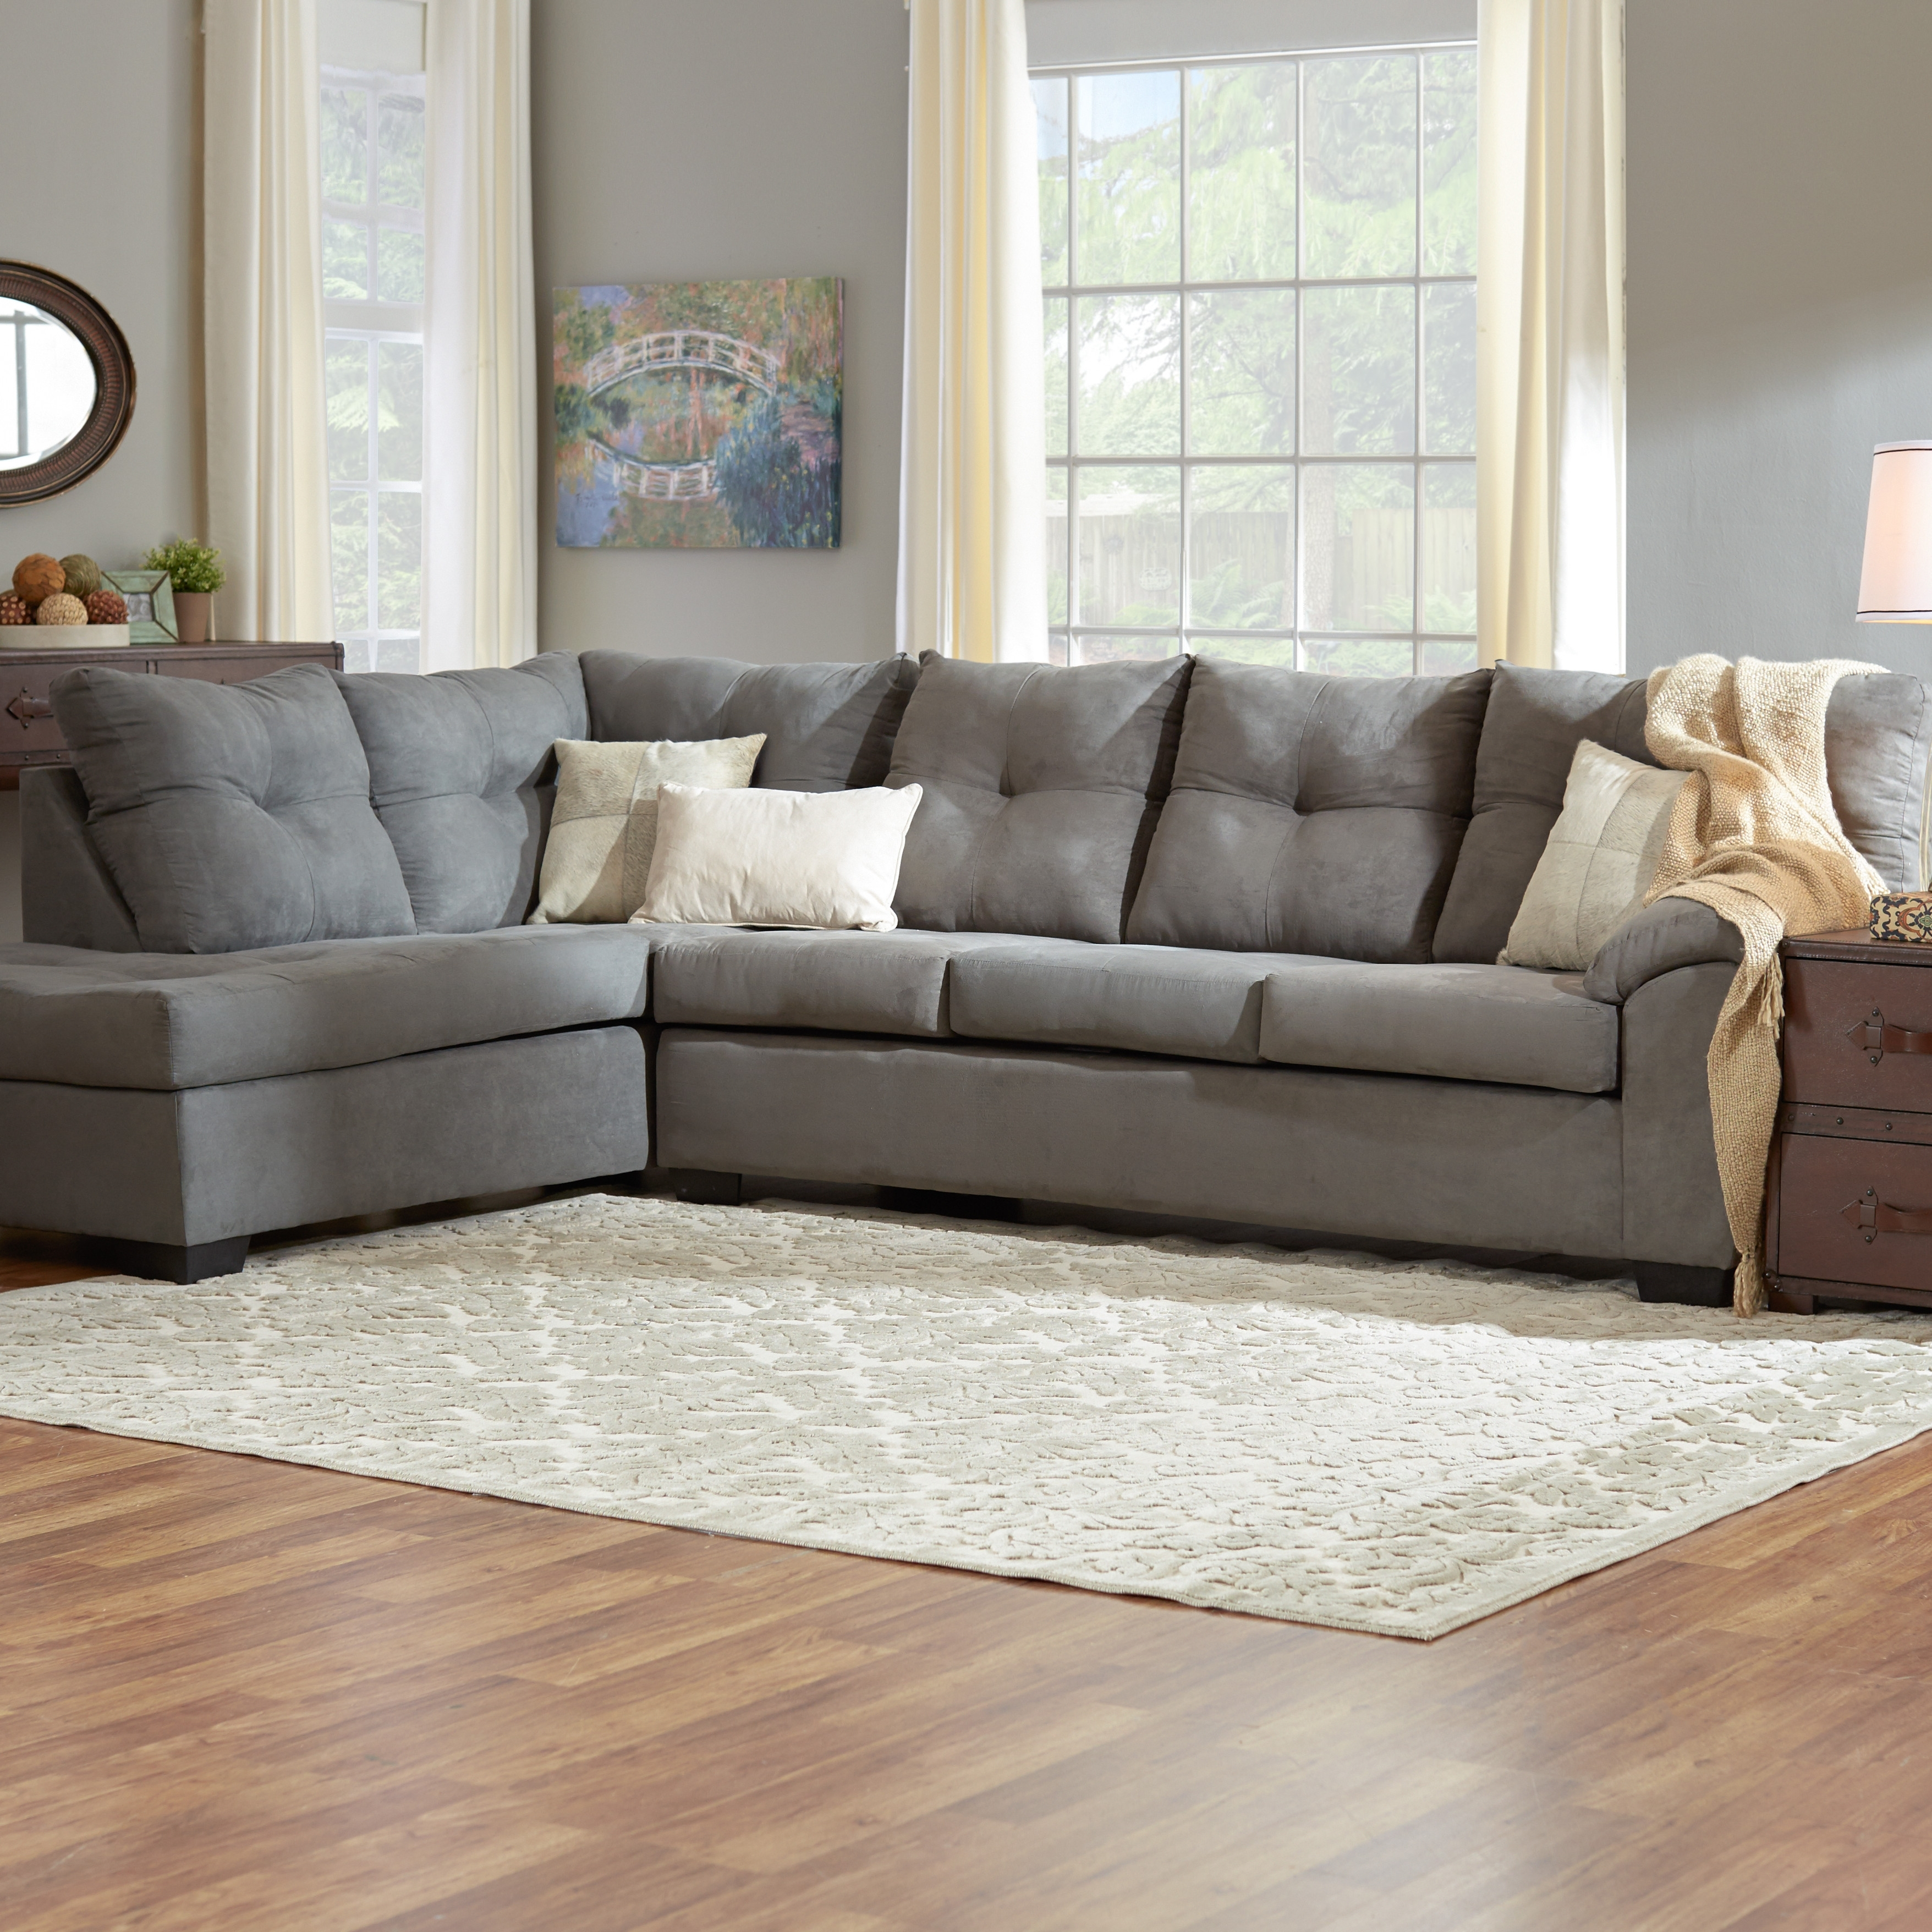 Cool Wayfair Sofa With Furniture Camden Sofa Sectional Couch For Inside Well Known Wayfair Sectional Sofas (View 3 of 20)